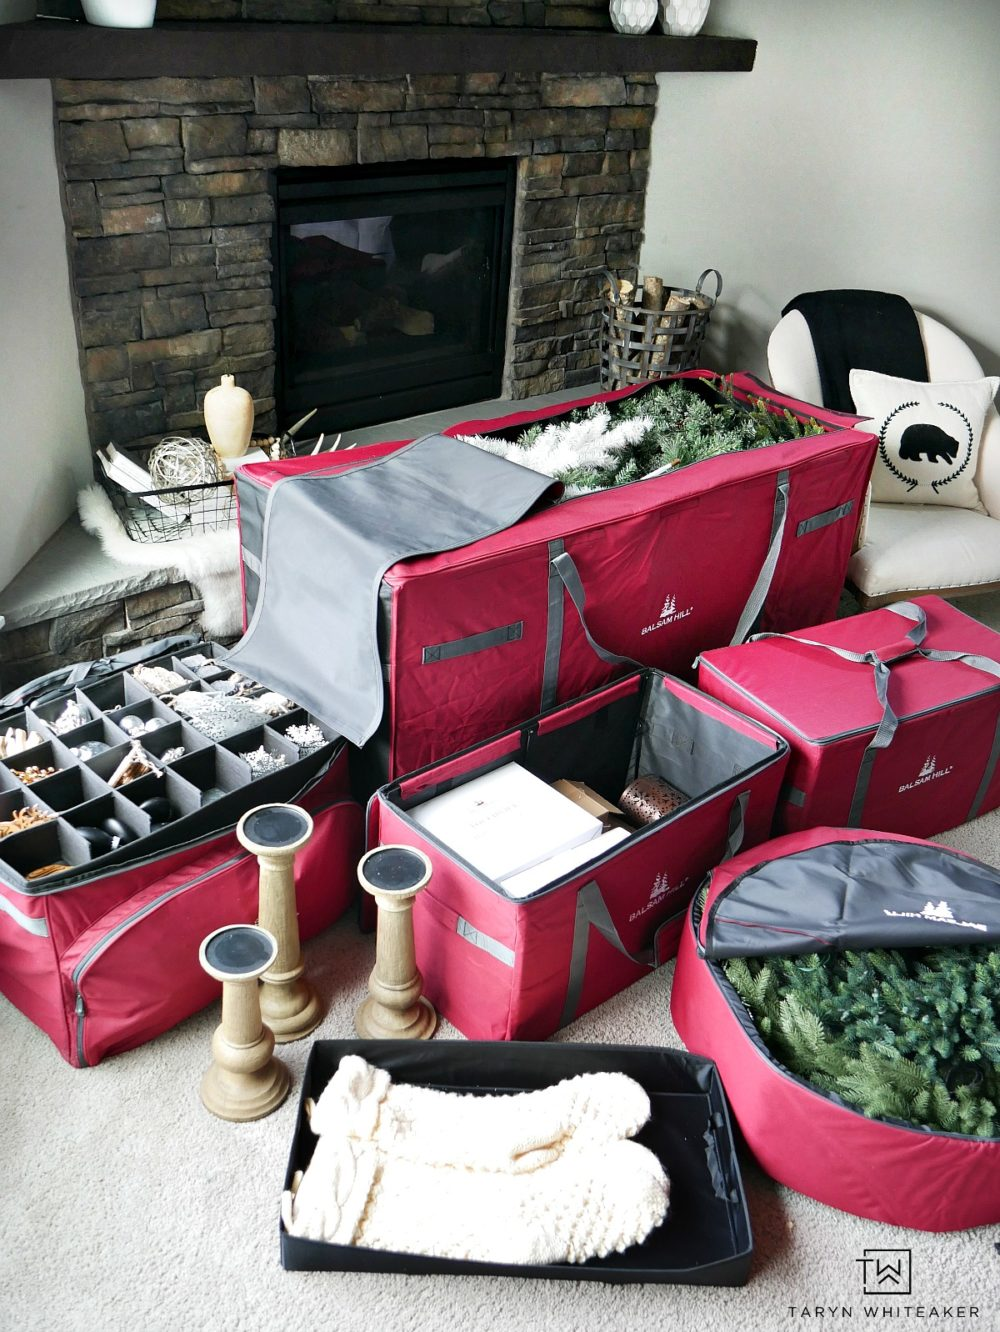 Ready to pack away your holiday decor? Here are some great Christmas Decor Organization Ideas for keeping your items safe and organized!